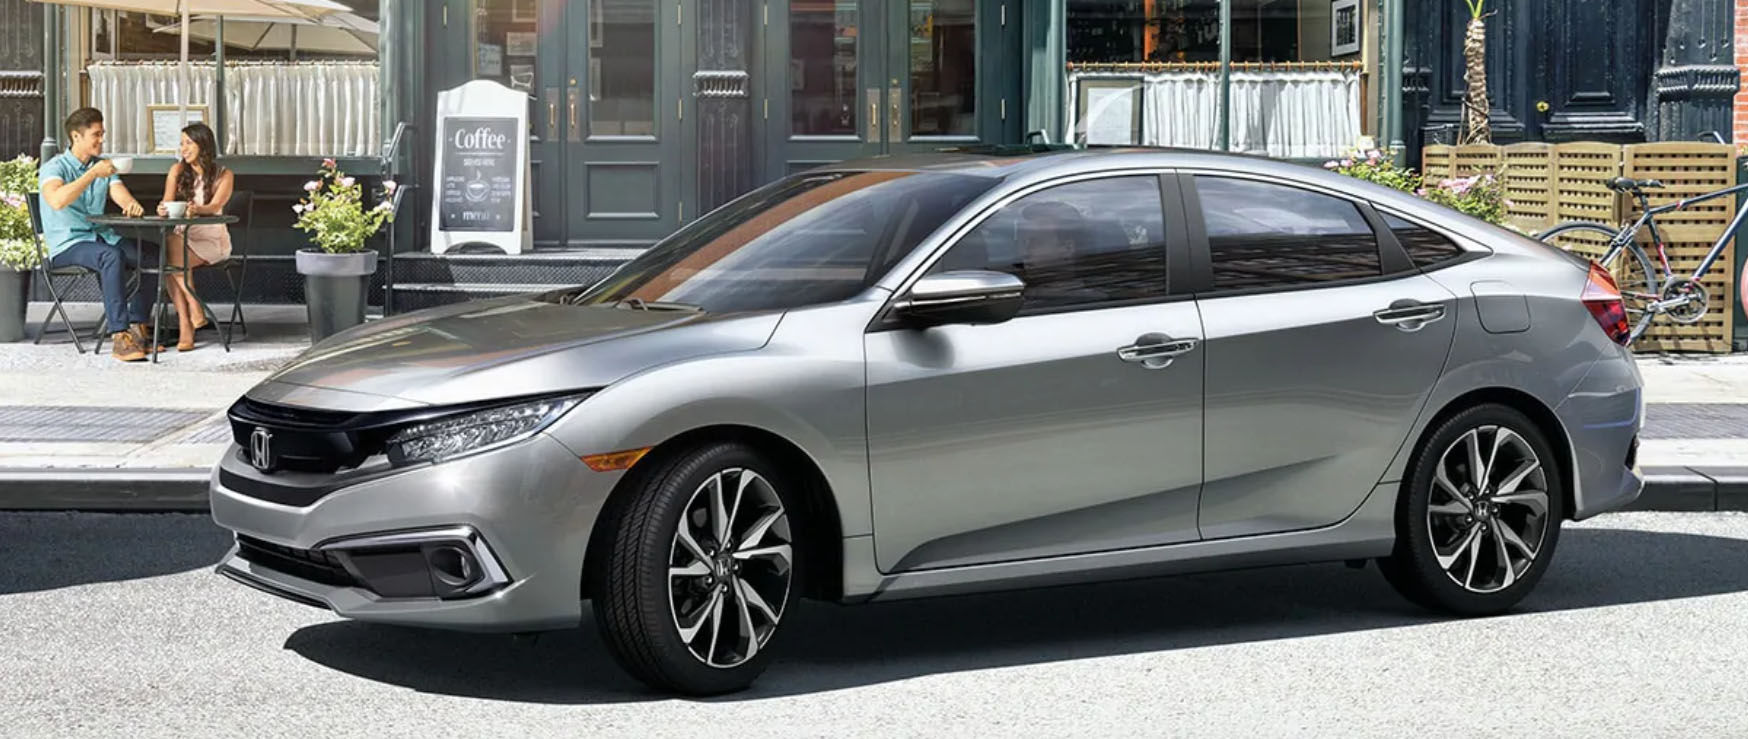 2020 Honda Civic Sedan For Sale in Spokane